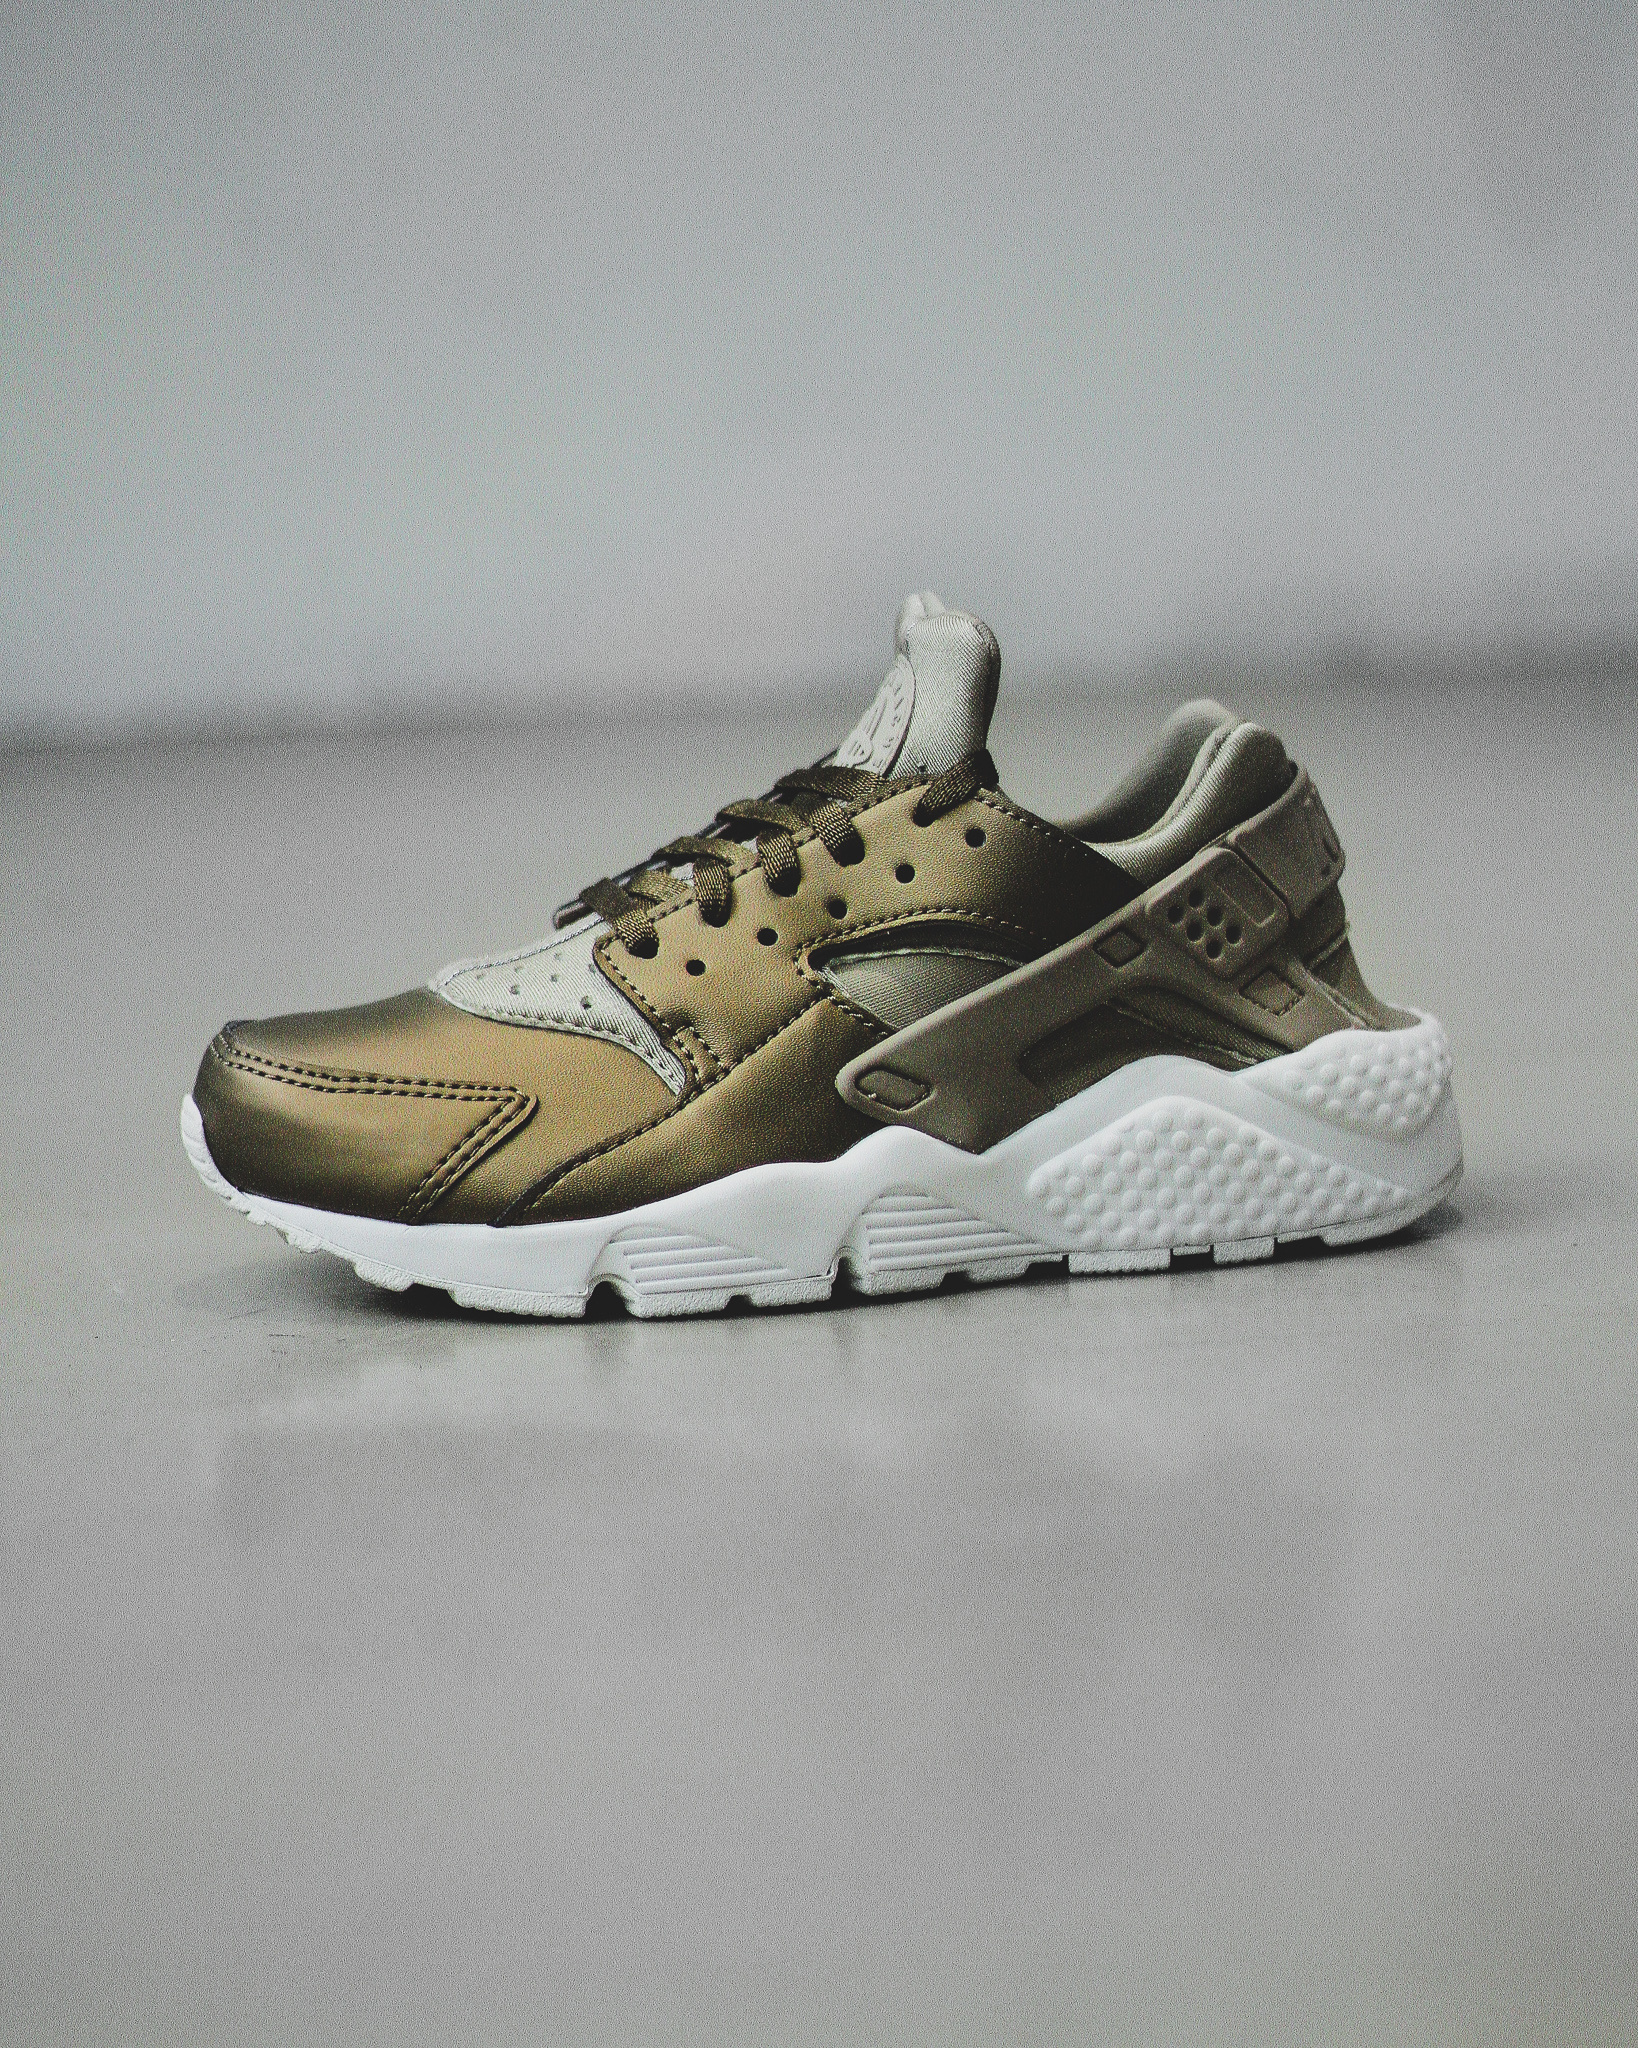 84db3d9015ce AIR HUARACHE RUN PRM TXT - Sneaker Room - Jersey City